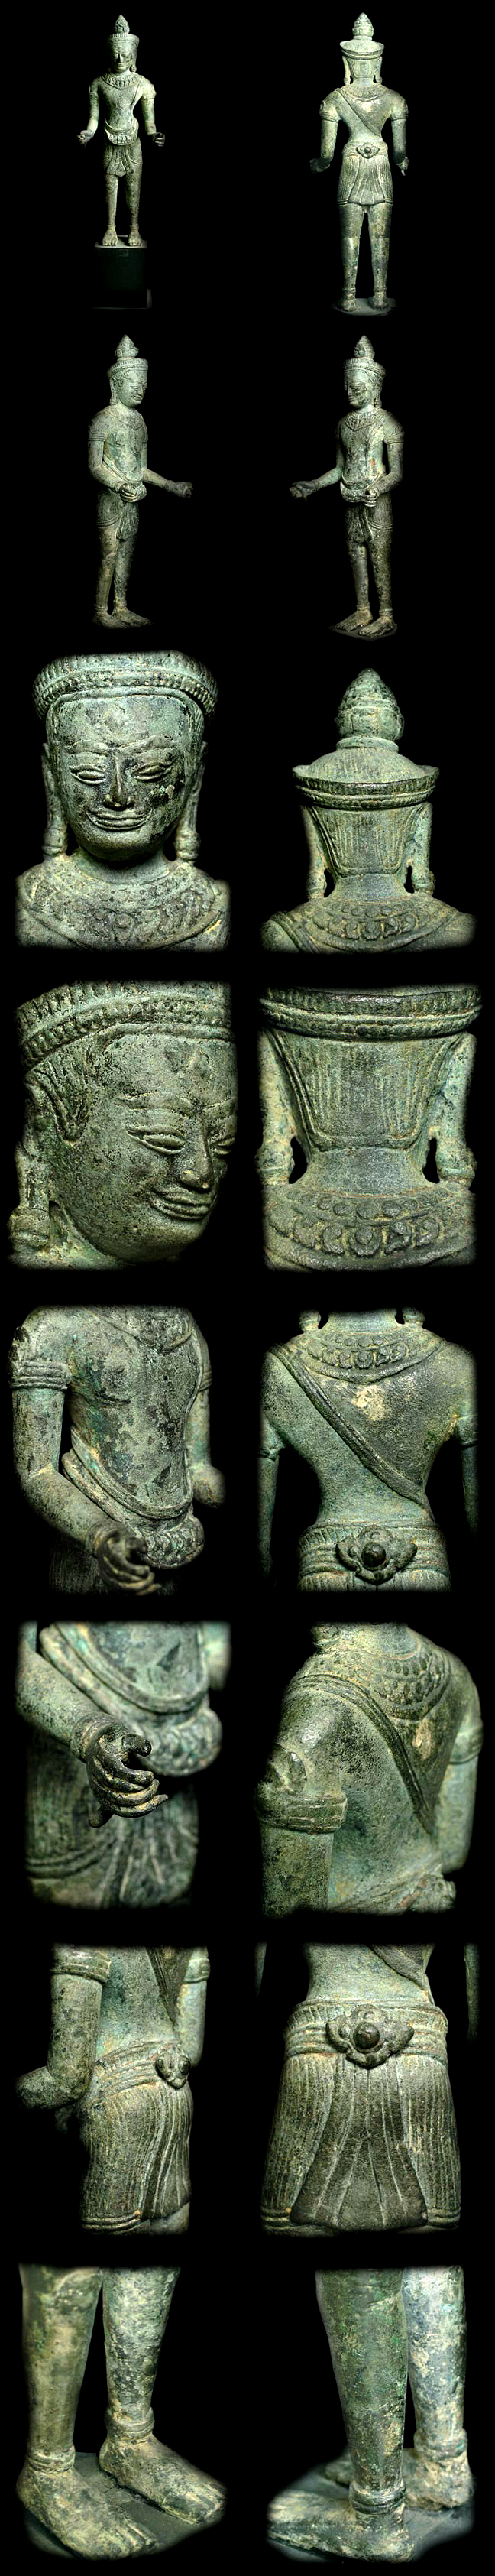 Extremely Rare 13C Khmer Siva Sculpture #Al.928